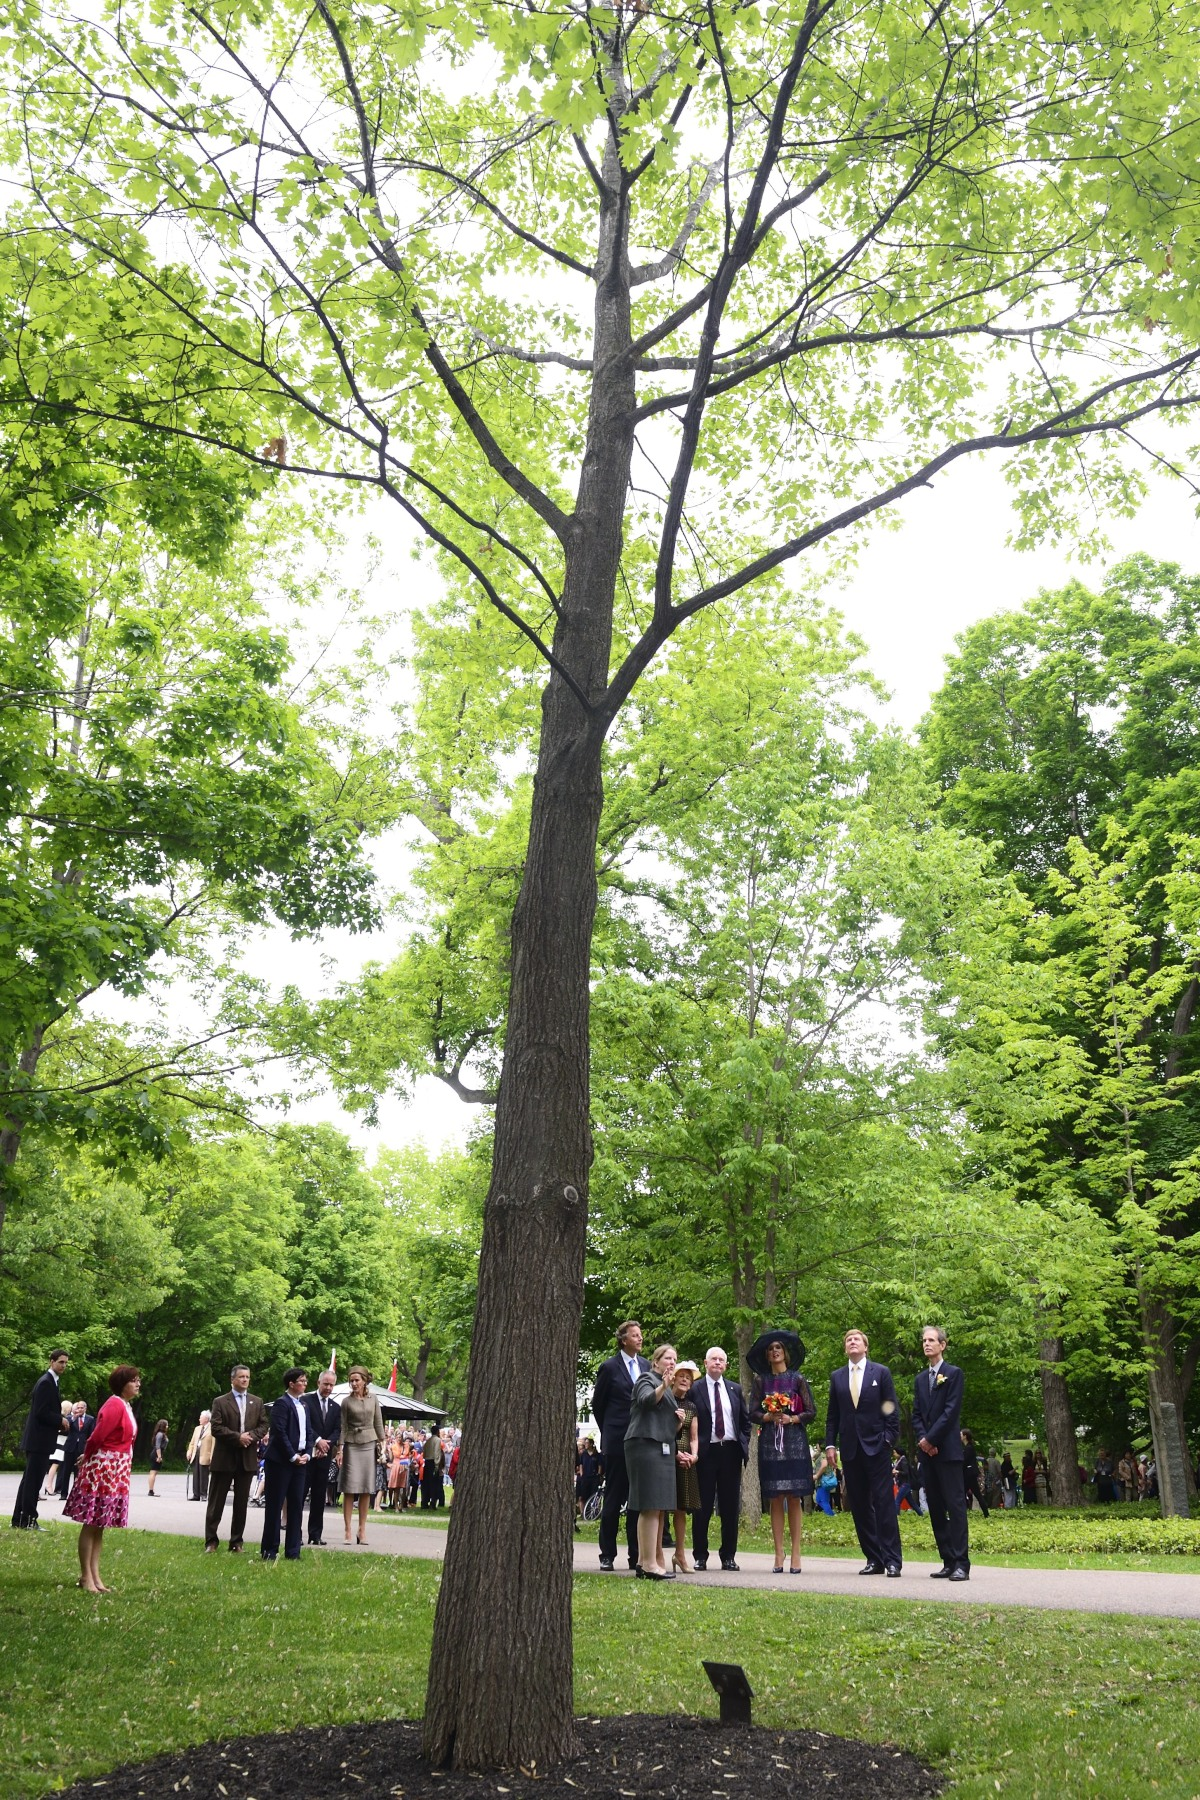 Their Majesties admired the Red Oak tree planted by Her Majesty Queen Beatrix in 1988.